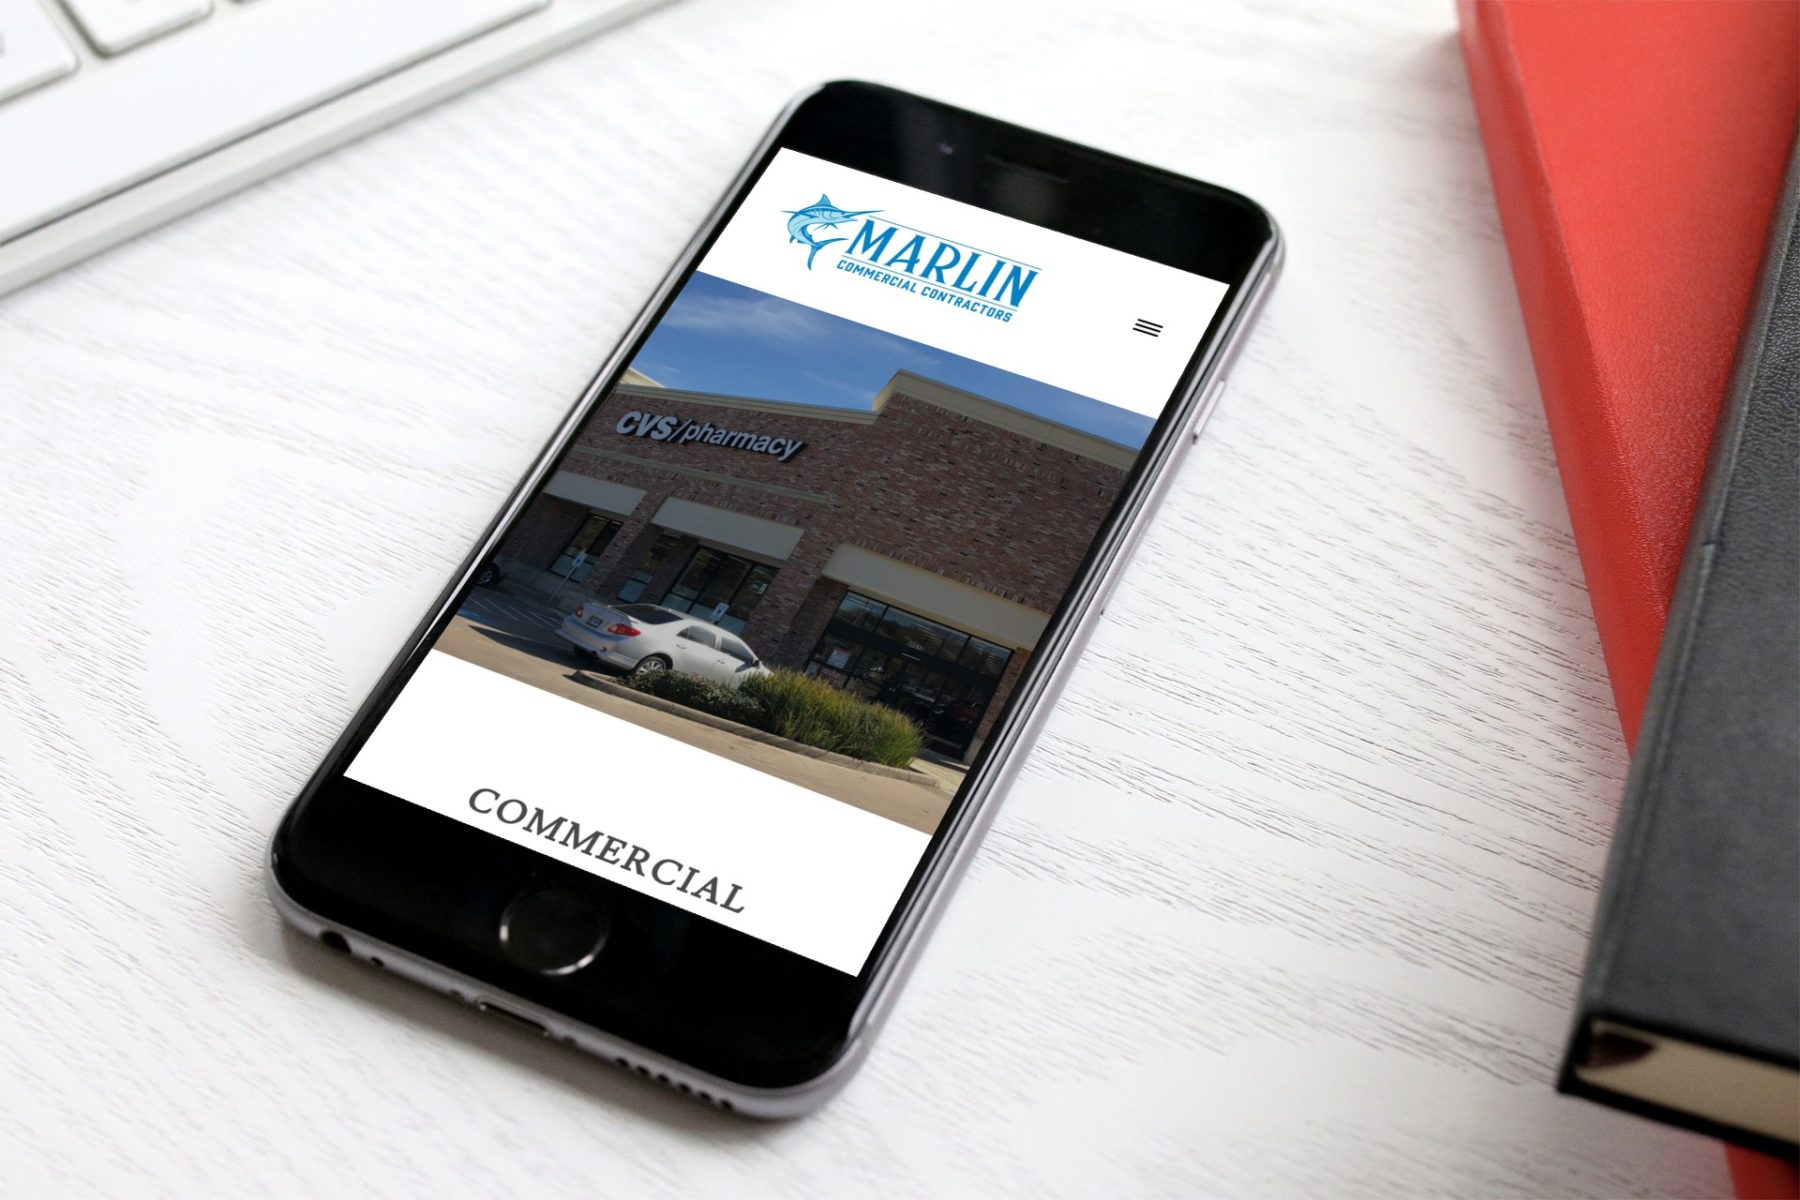 Marlin Commercial Contractors Mobile Website Design